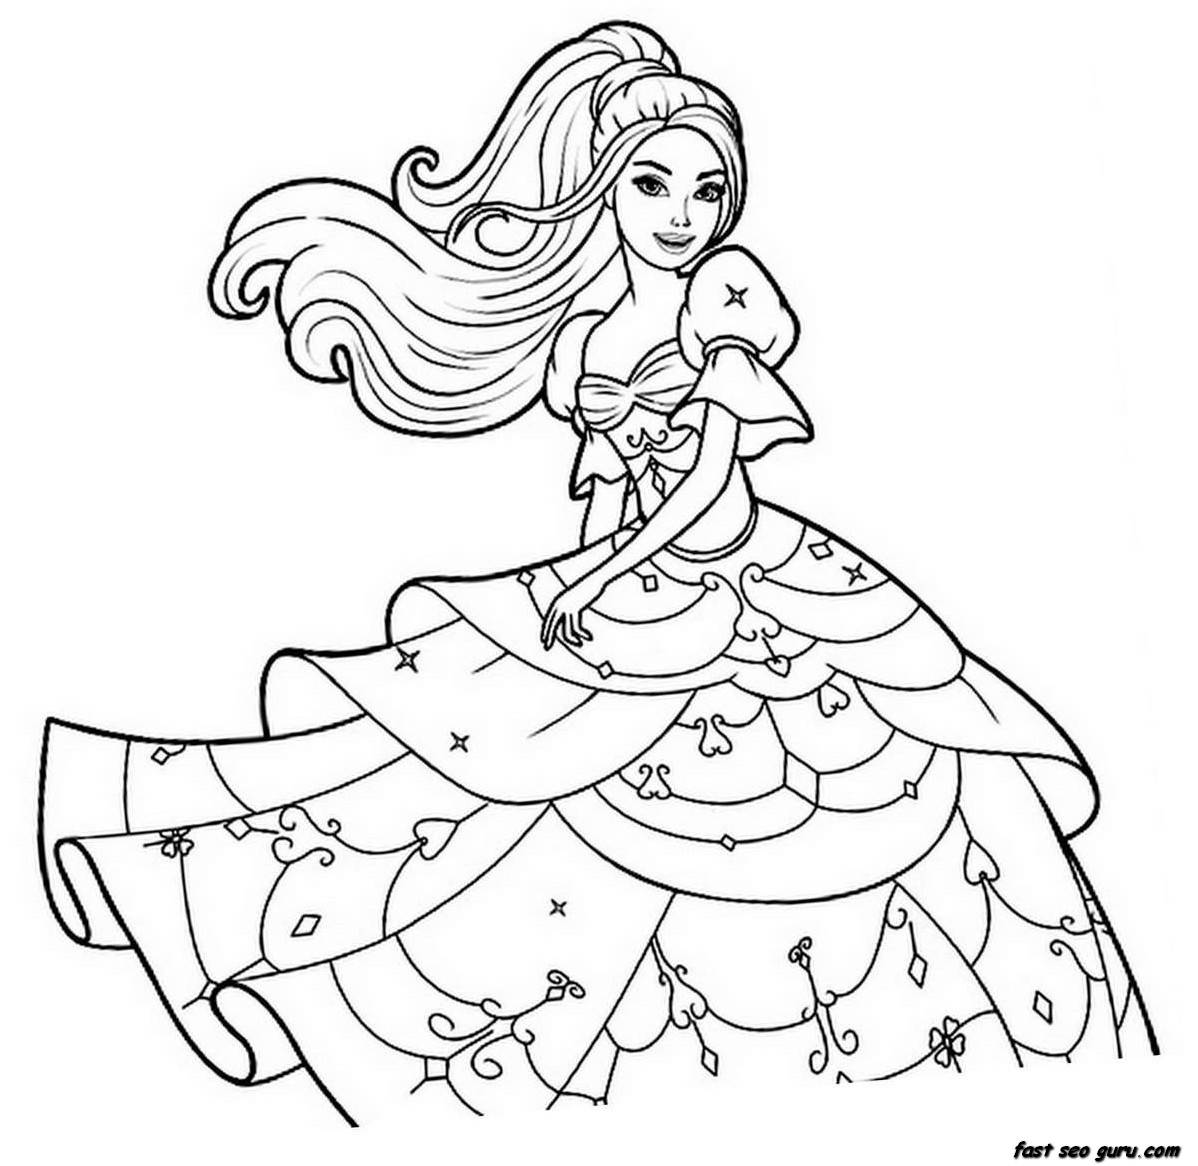 fashion-coloring-page-0024-q1